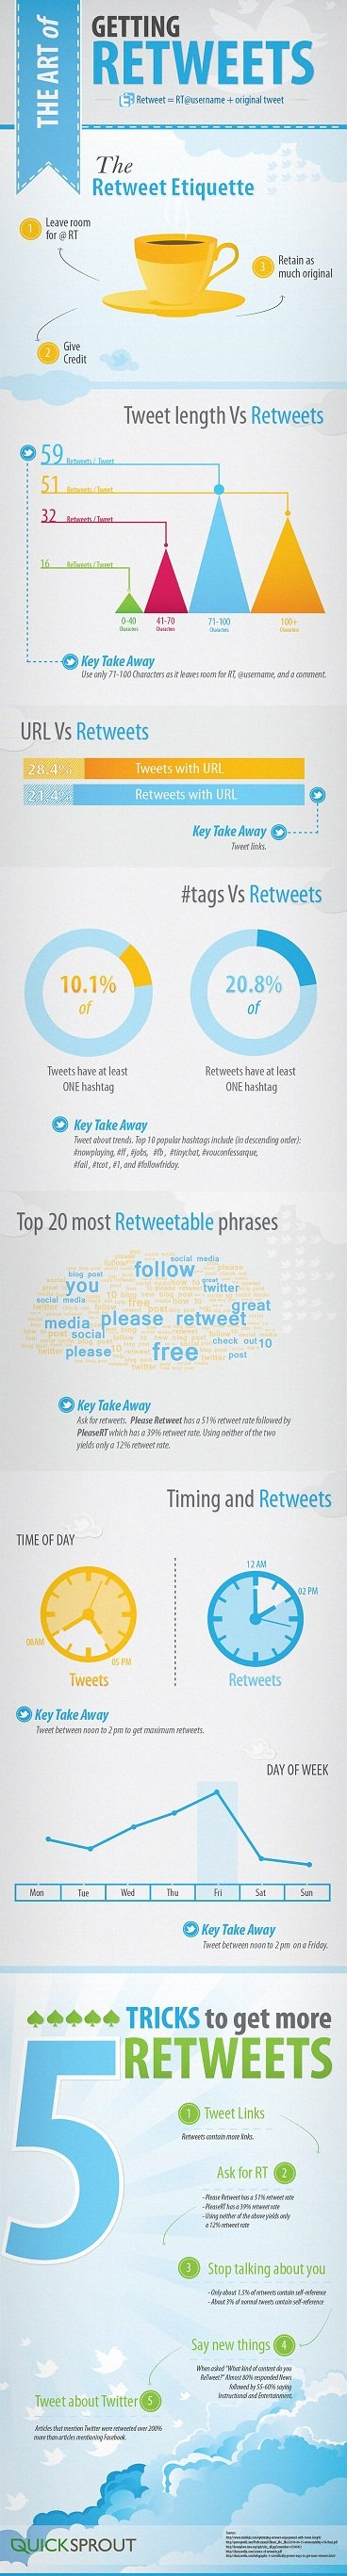 The Art of Getting Retweets [INFOGRAPHIC] #socialmedia #infographic